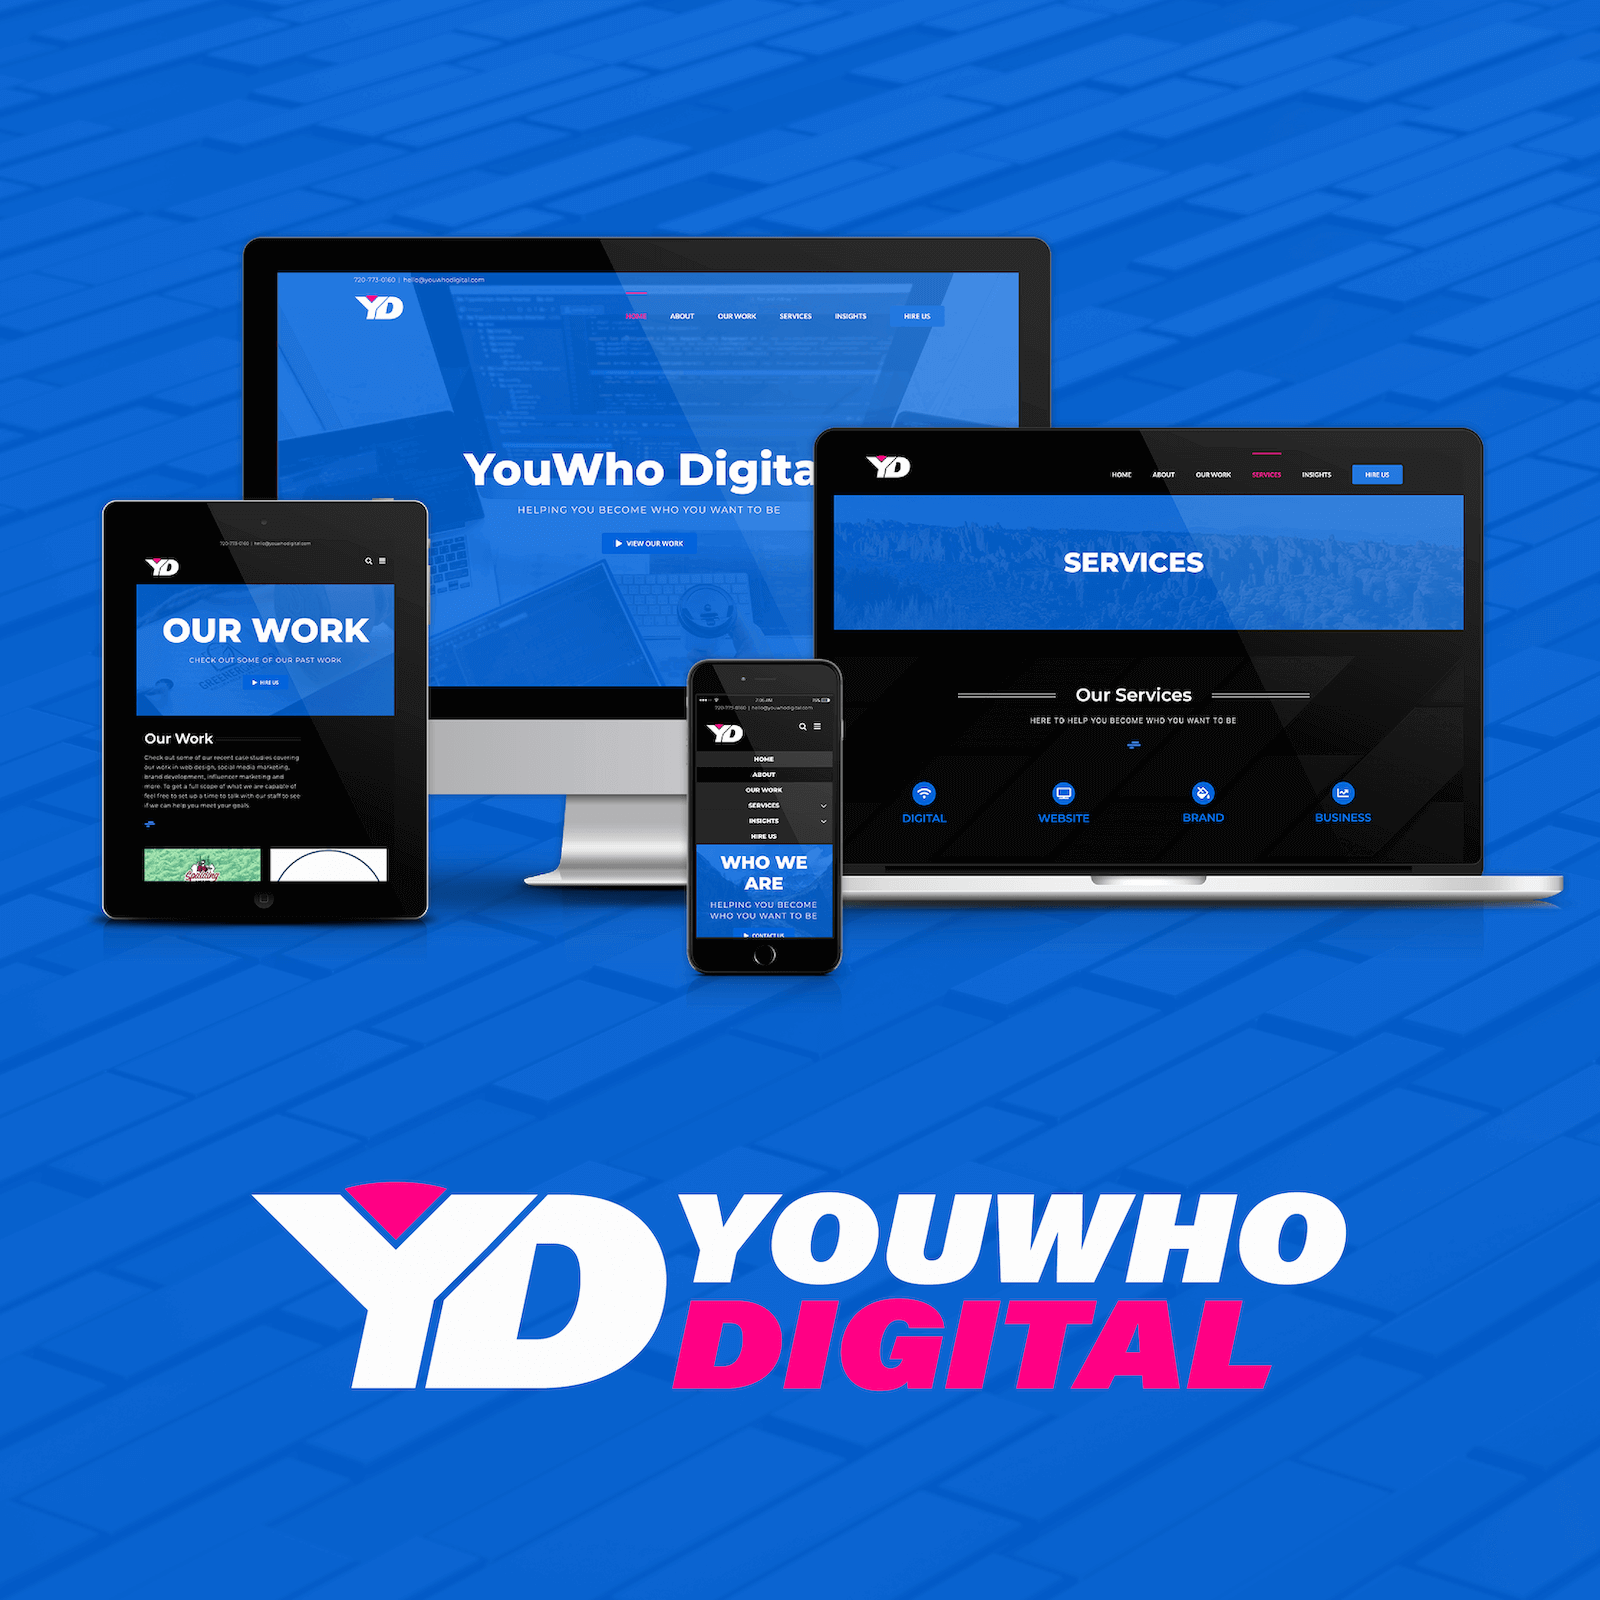 YouWho Digital